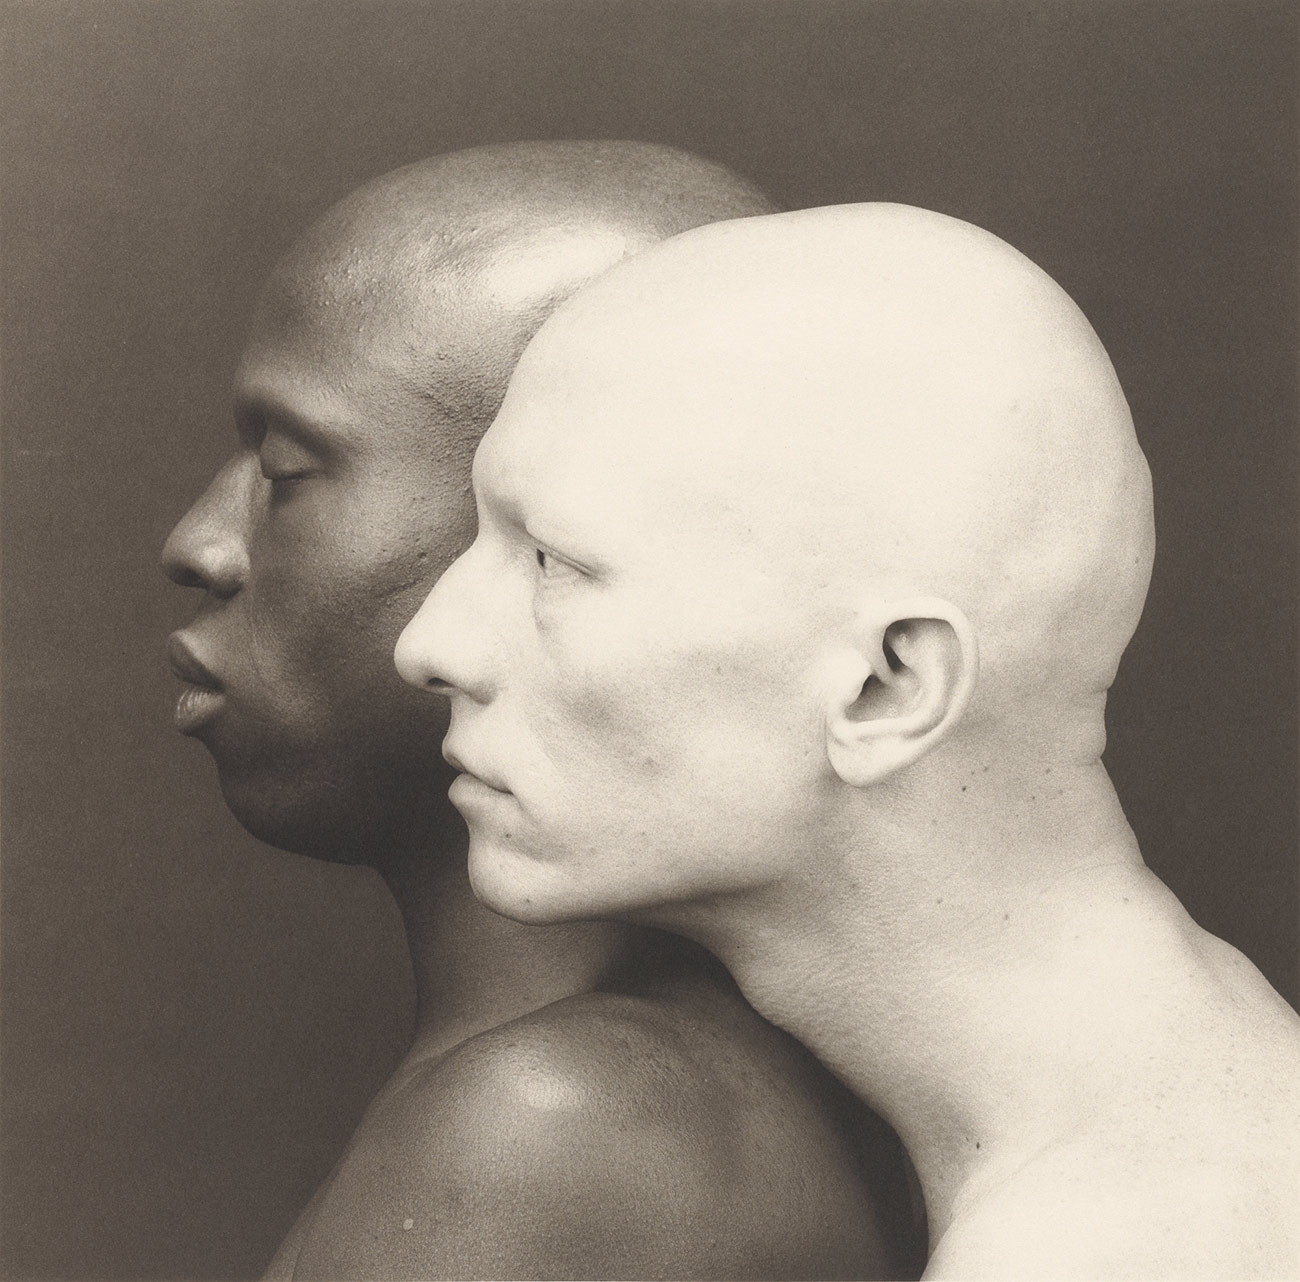 Ken Moody and Robert Sherman / Robert Mapplethorpe